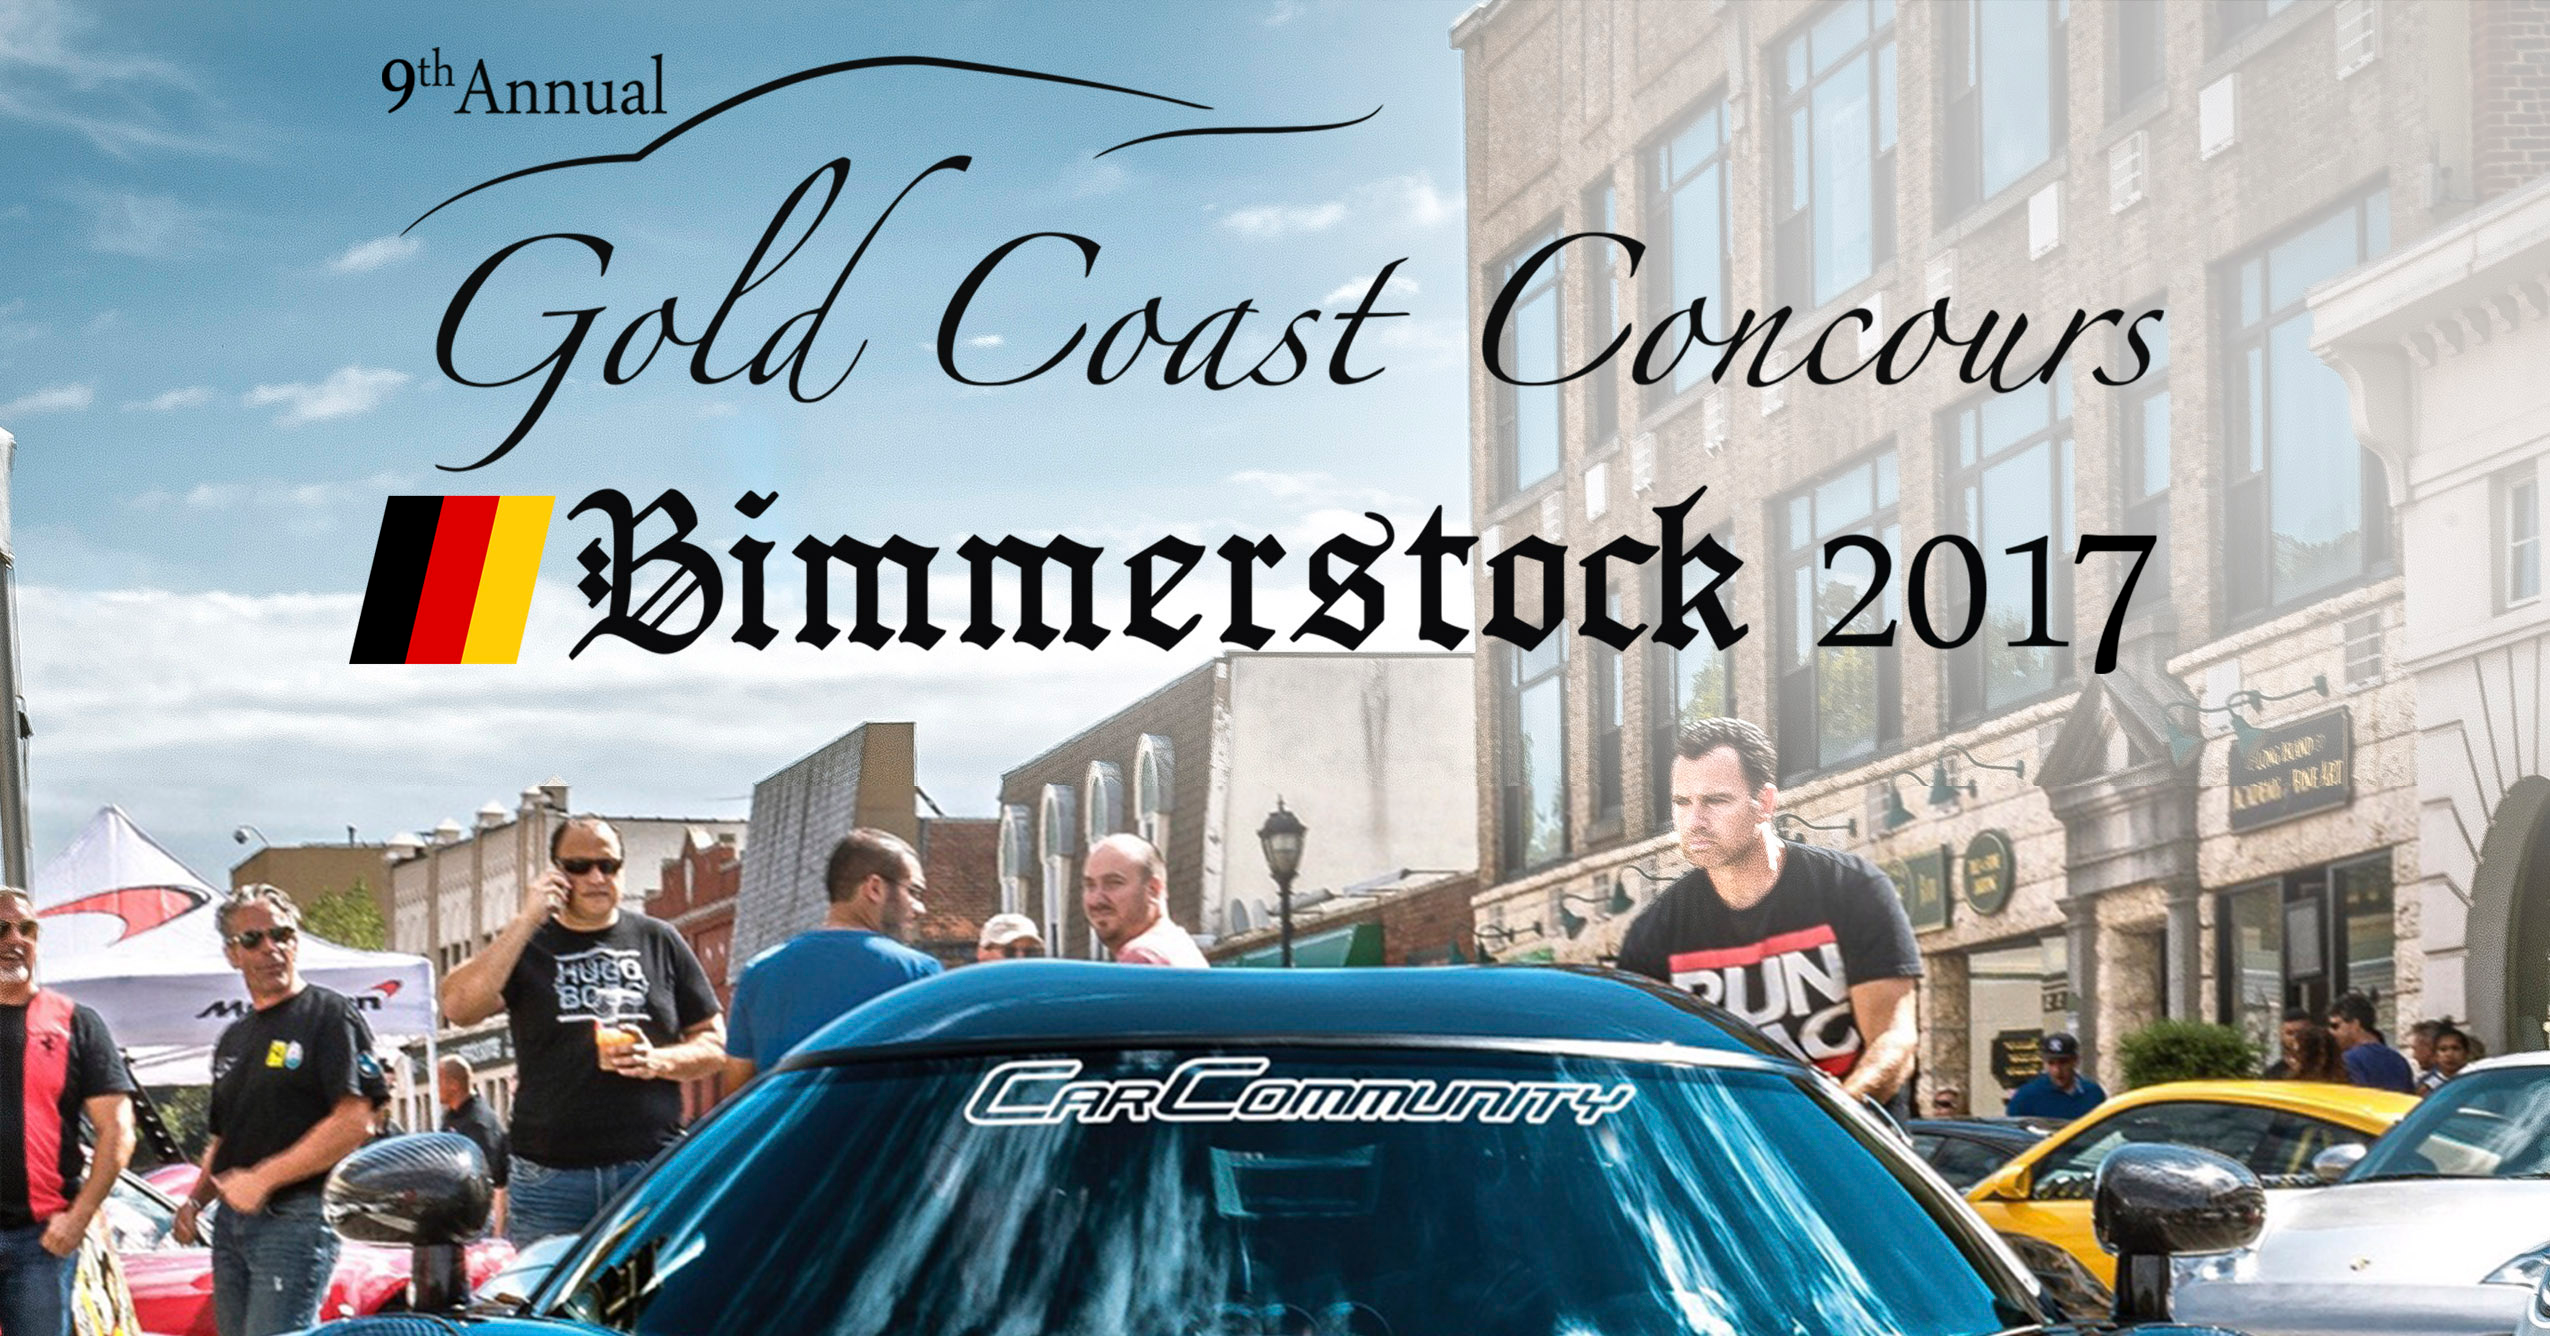 9th Annual GOLD COAST CONCOURS BIMMERSTOCK 2017